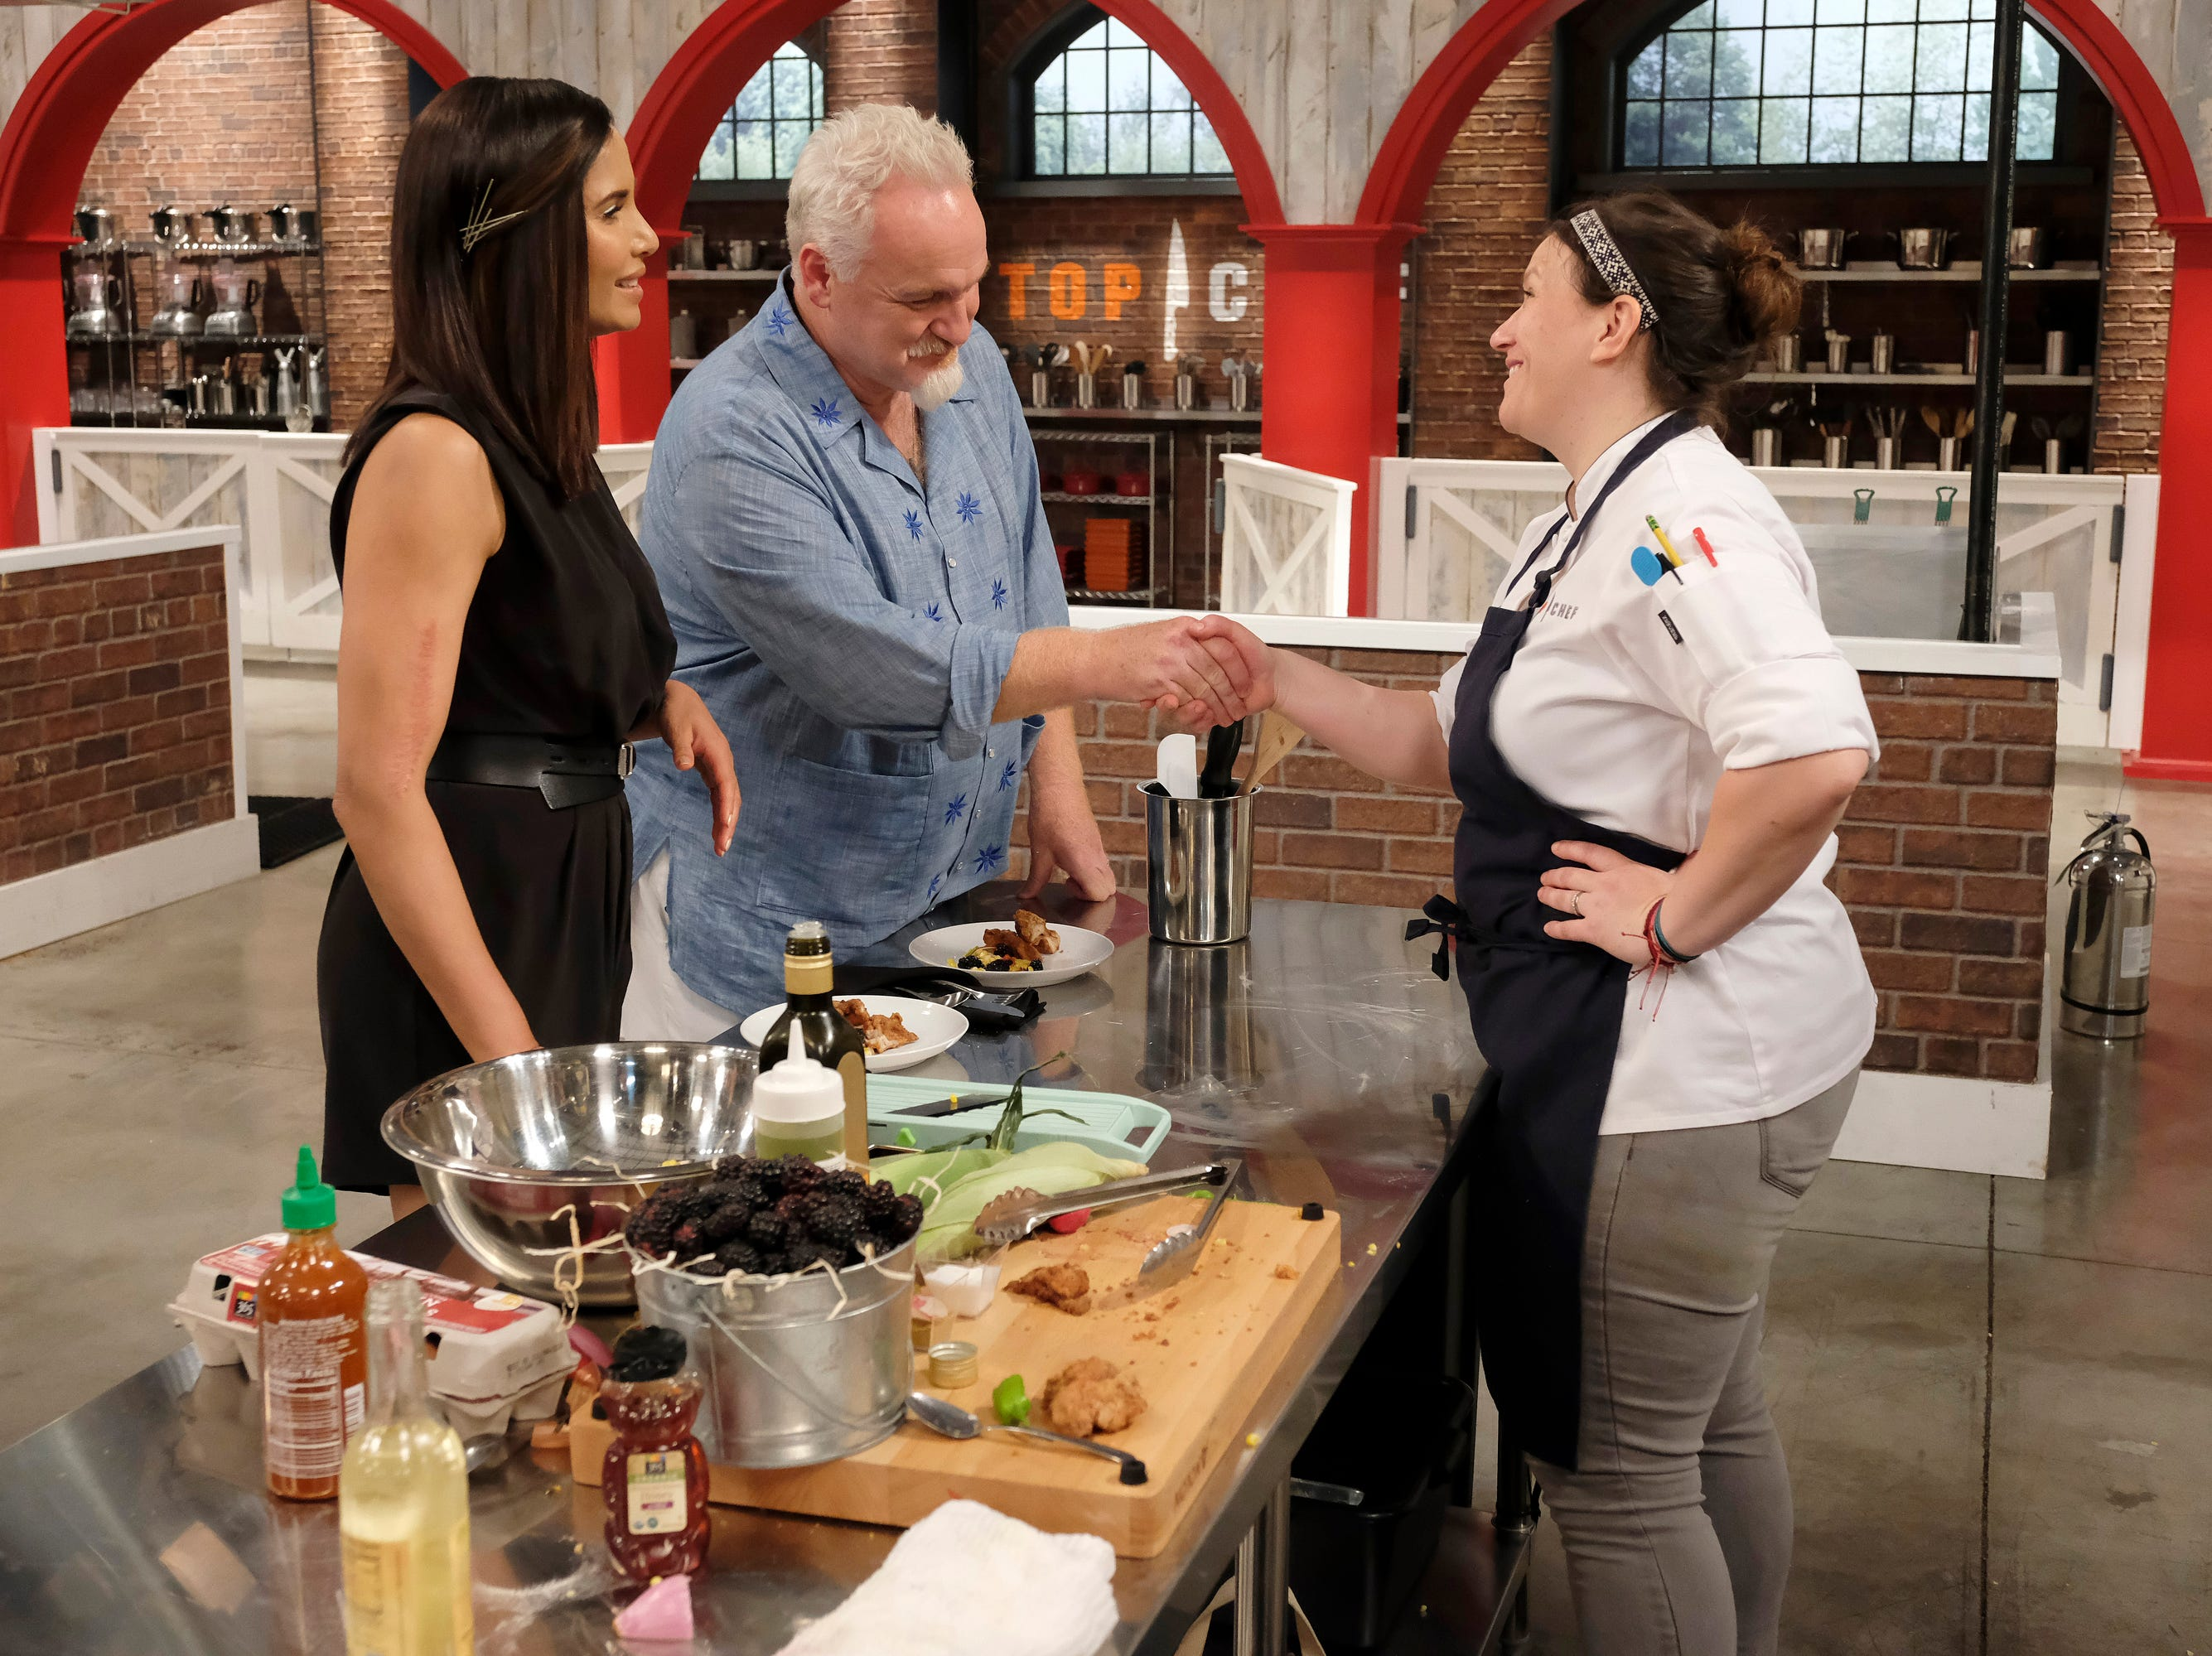 (From left to right): Host Padma Lakshmi, Chef Art Smith and contestant Sara Bradley on episode 11 of Bravo's 'Top Chef:' Kentucky season.